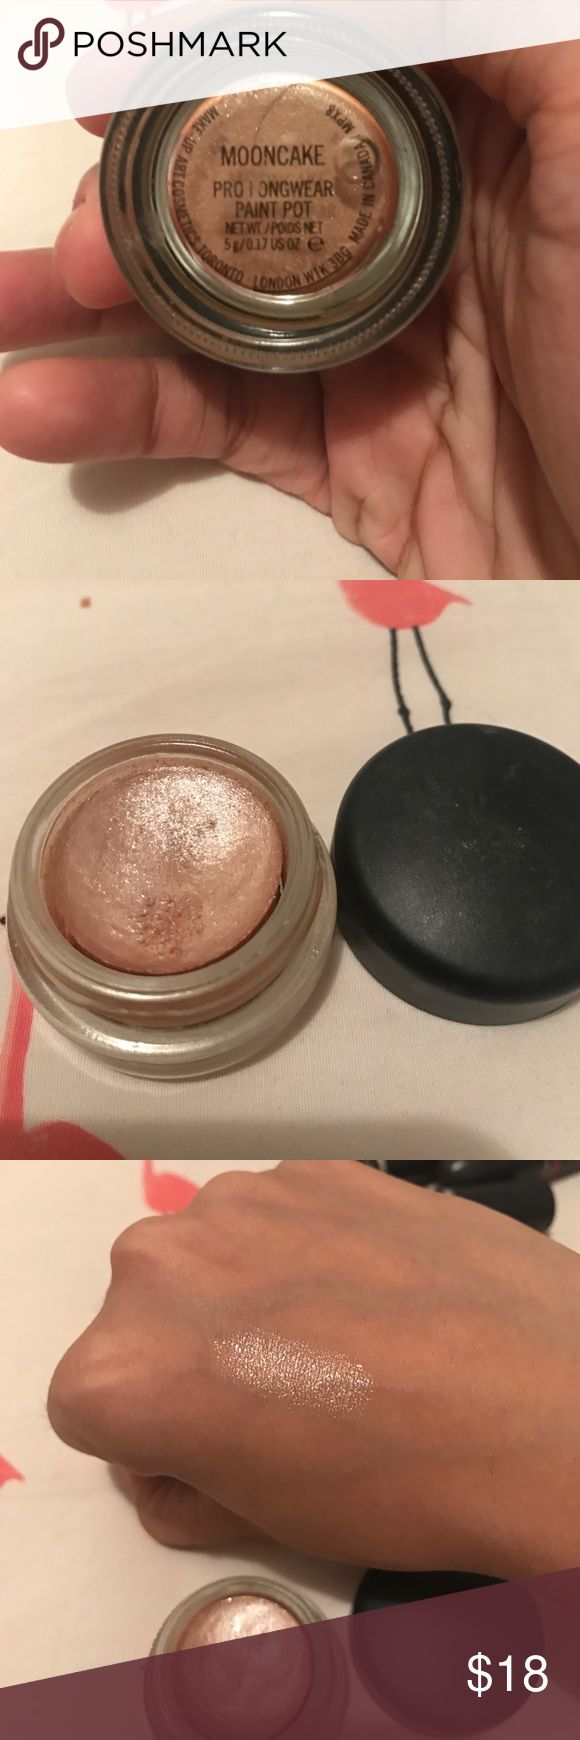 Mac Pro paint pot in moon cake limited edition Mac Pro longeear paintpot in MoonCake. GORGEOUS color. Used few times. MAC Cosmetics Makeup Eye Primer